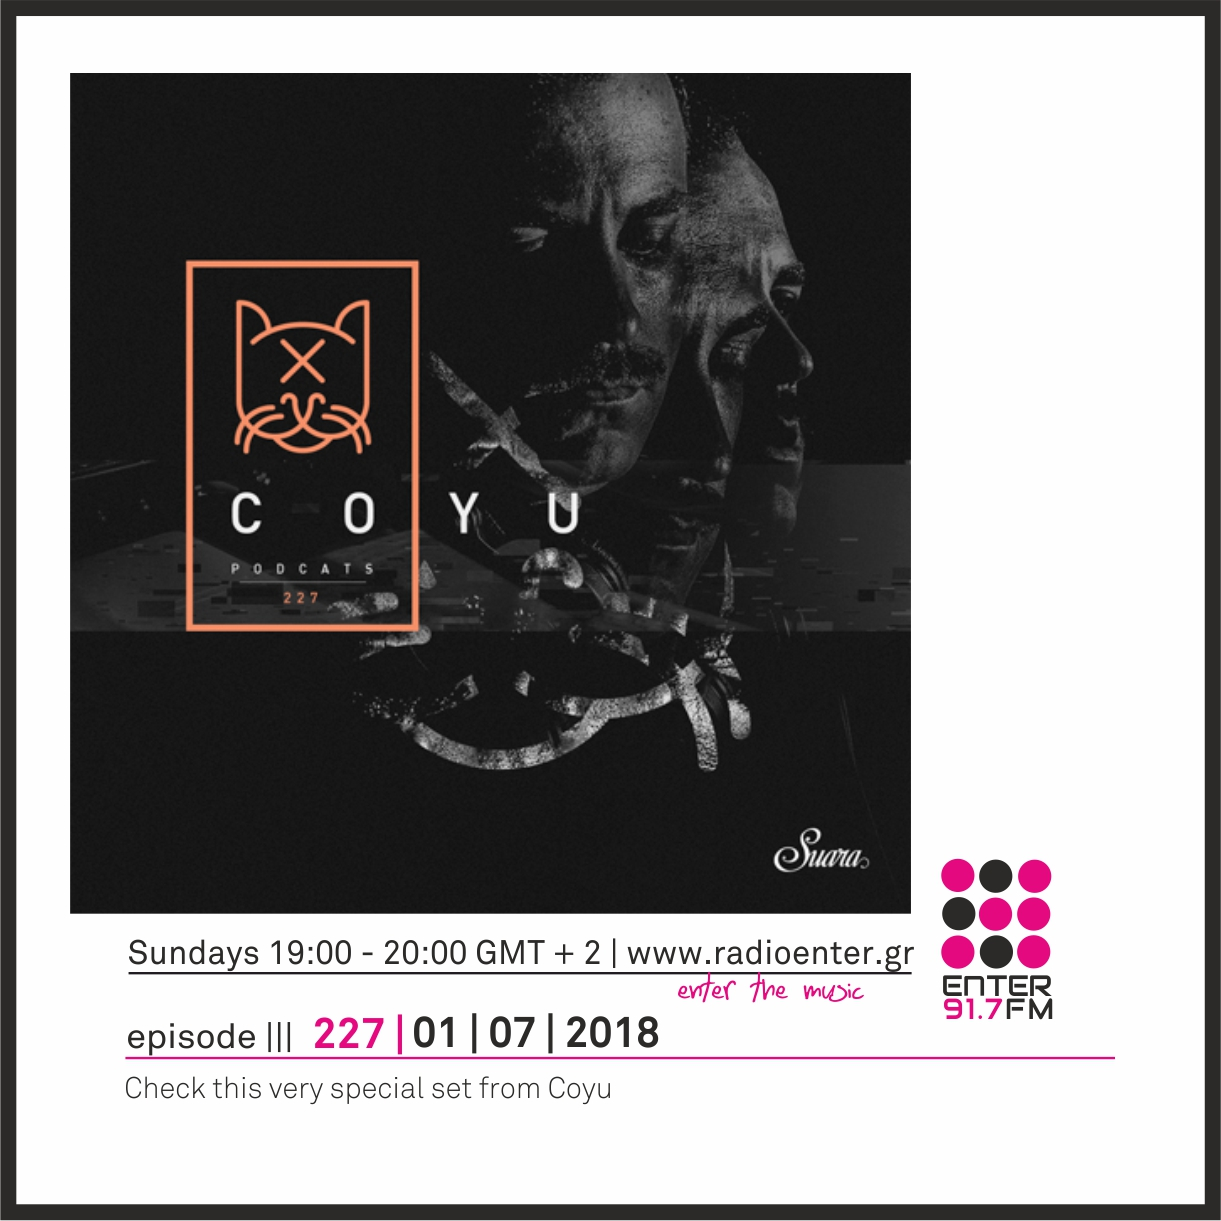 2018.07.01 - Coyu presents Suara PodCats 227